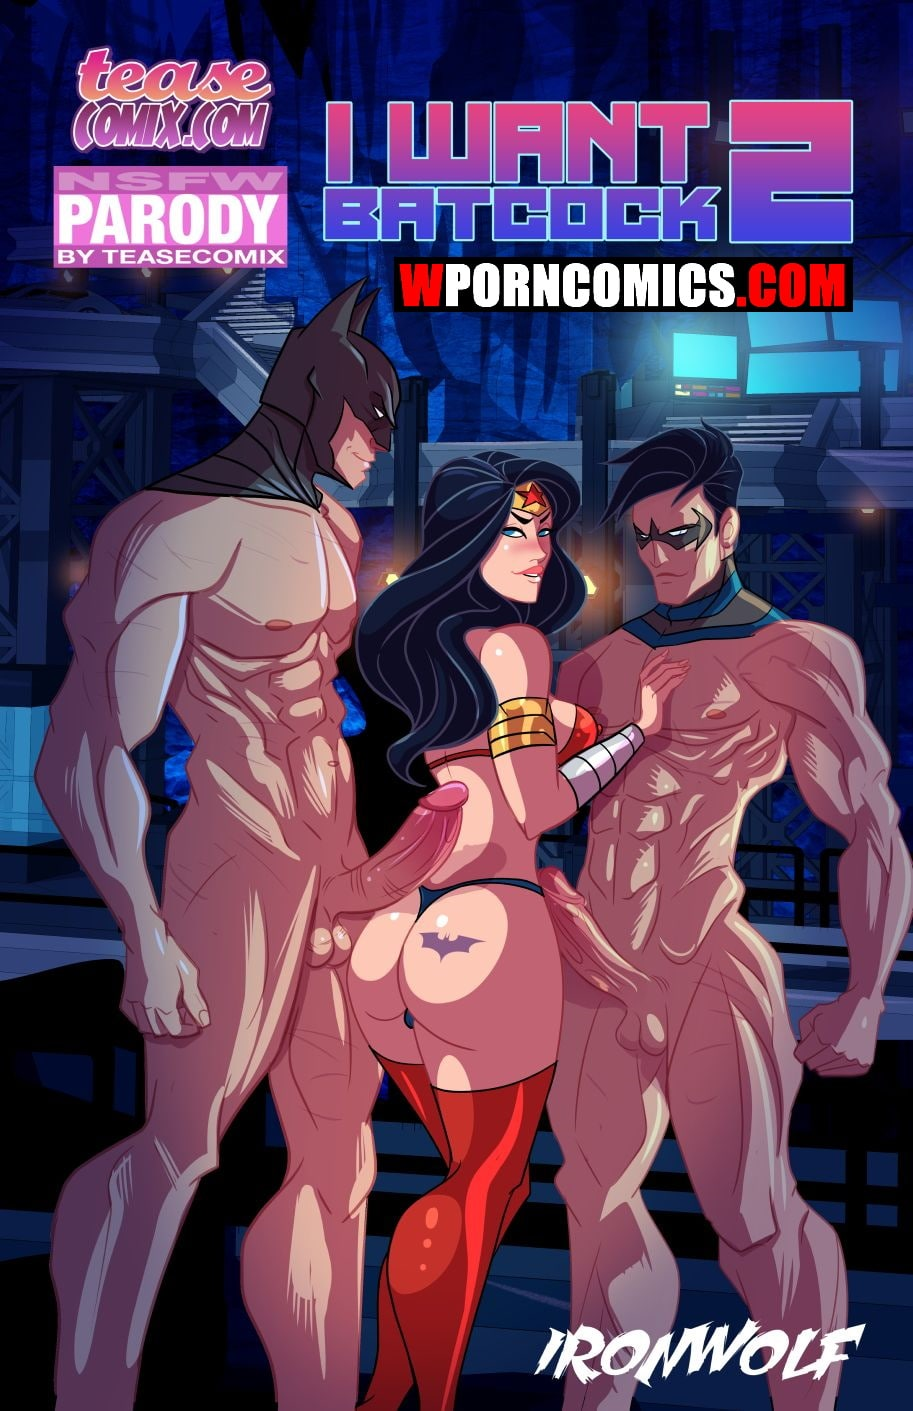 Porn comic I Want Batcock. Part 2.